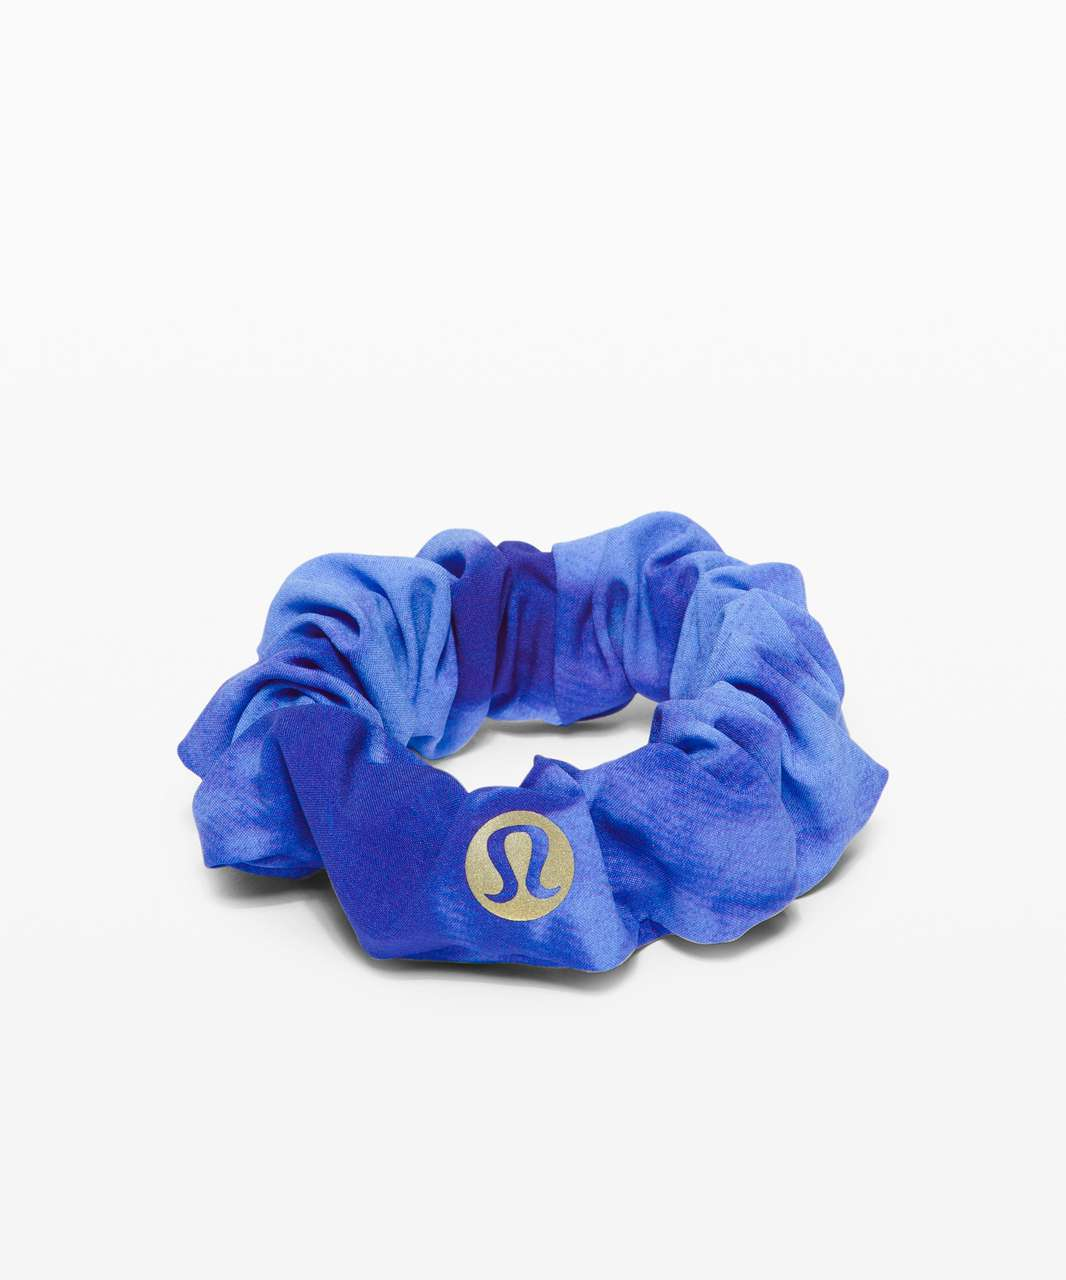 Lululemon Uplifting Scrunchie *Game Day - Team Spirit Blue Multi